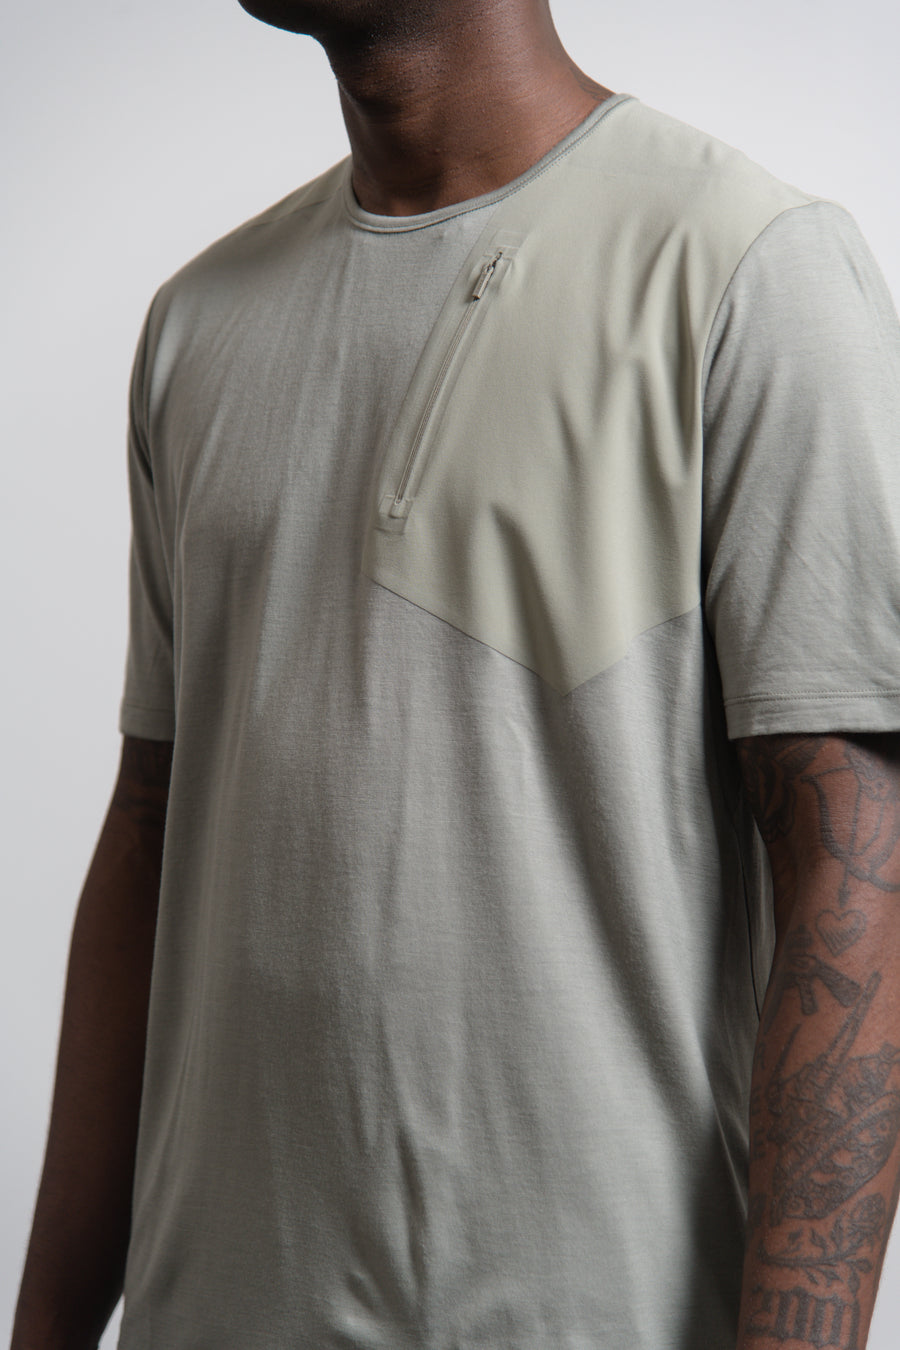 Frame Pocket Short Sleeve Shirt Moondust